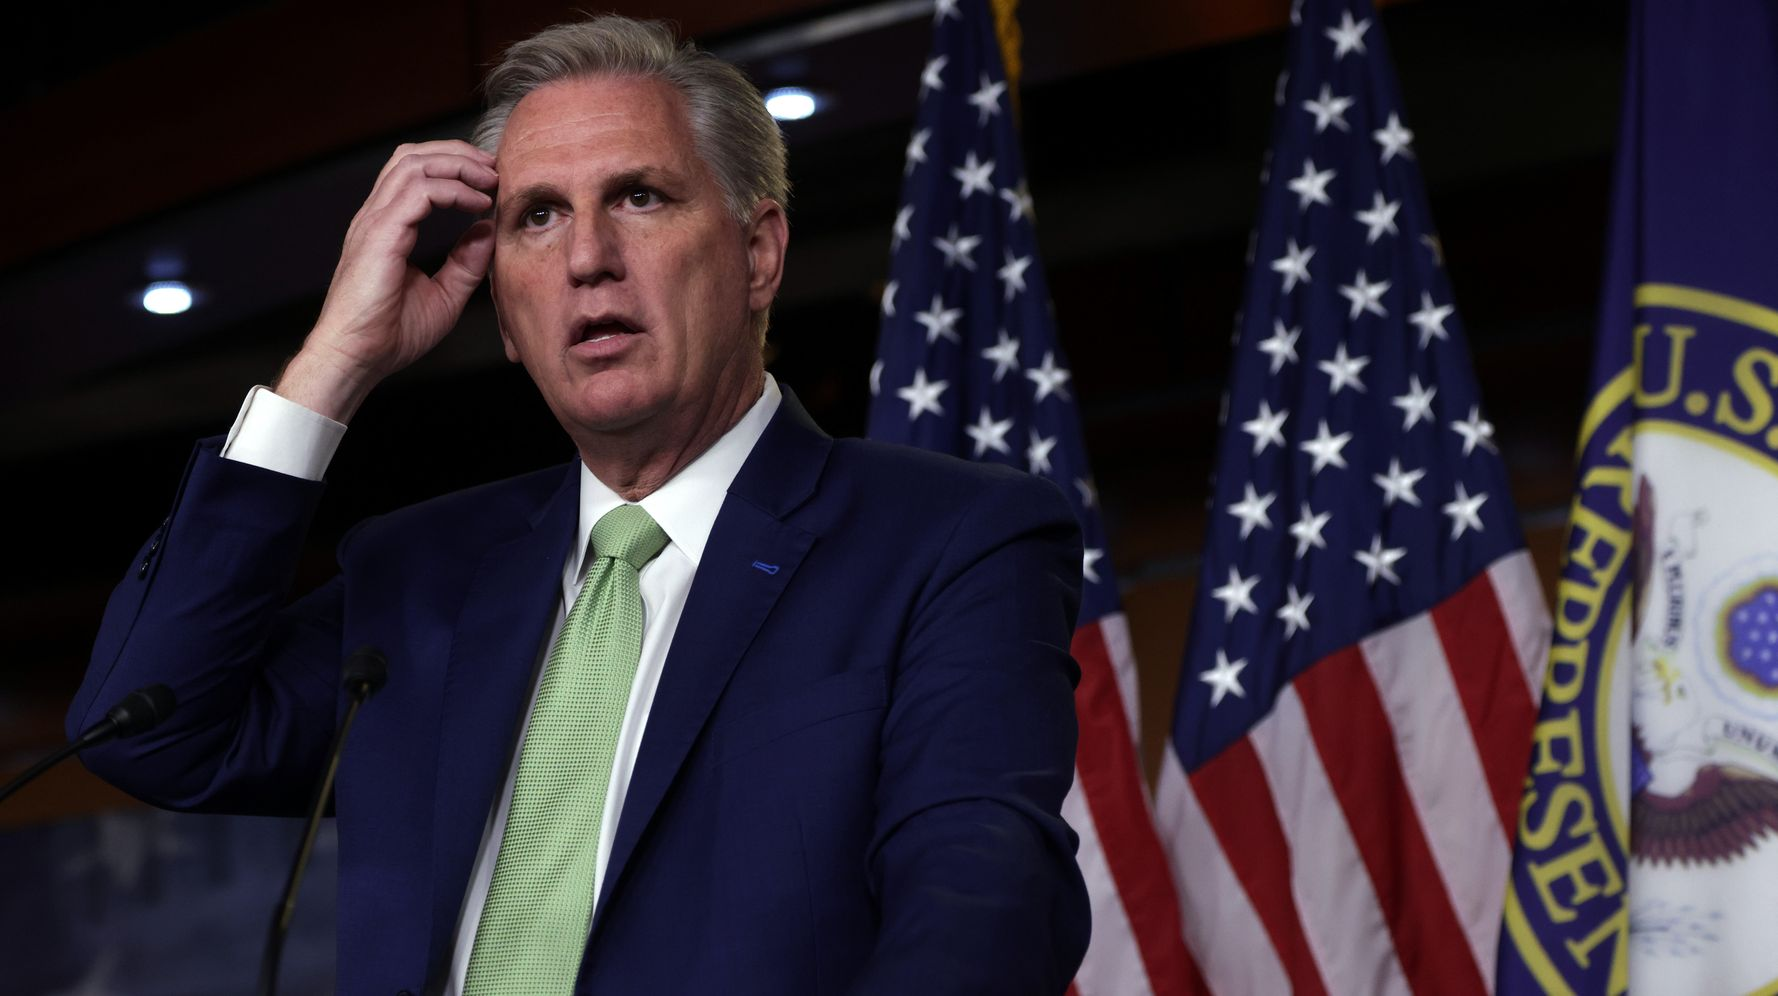 Kevin McCarthy Caught On Hot Mic Saying He's 'Had It' With Liz Cheney: Report